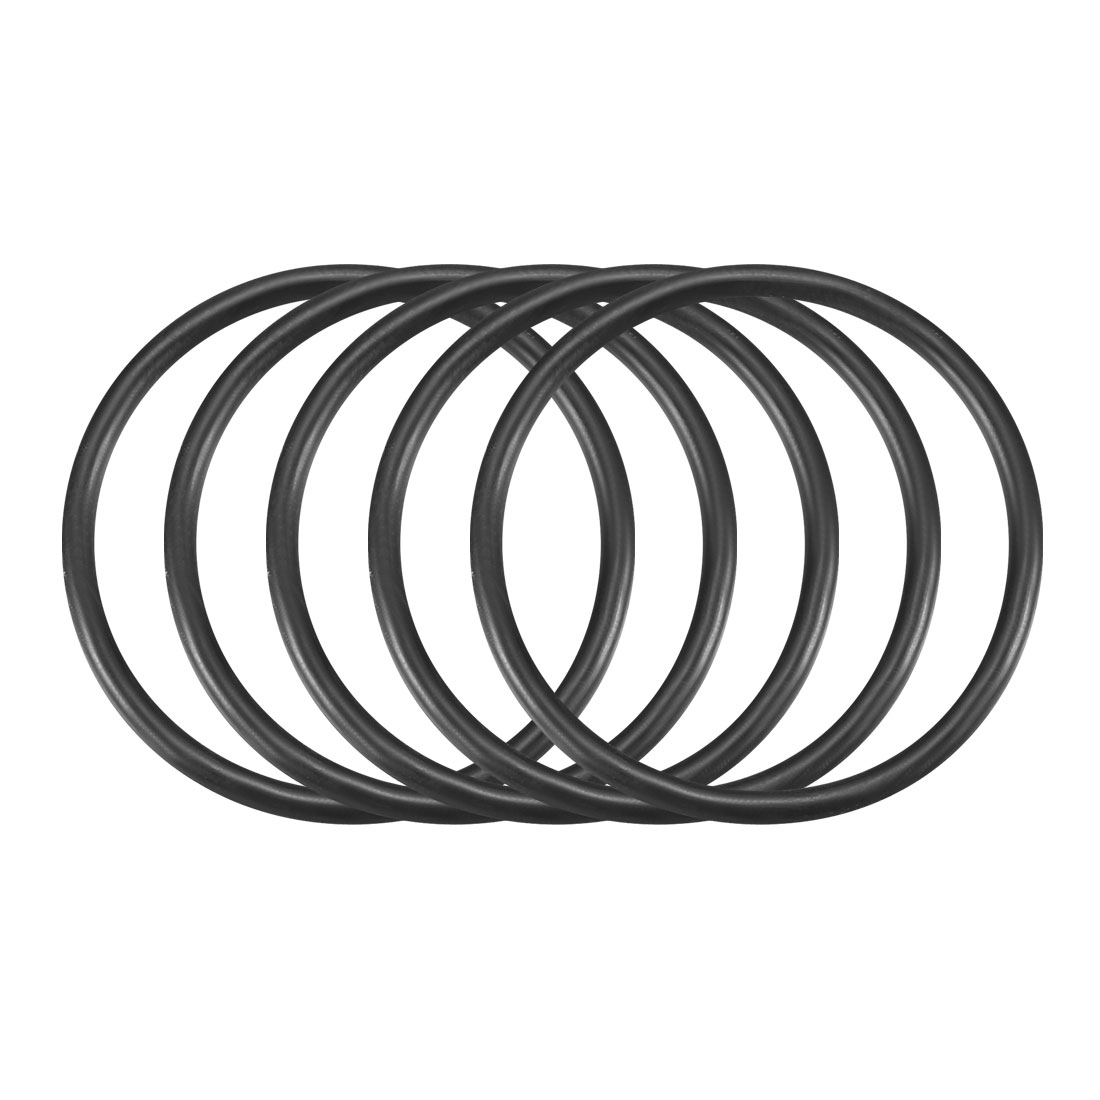 50Pcs Black 30mm Dia 2mm Thickness Flexible Rubber O Ring NBR Sealing Grommets